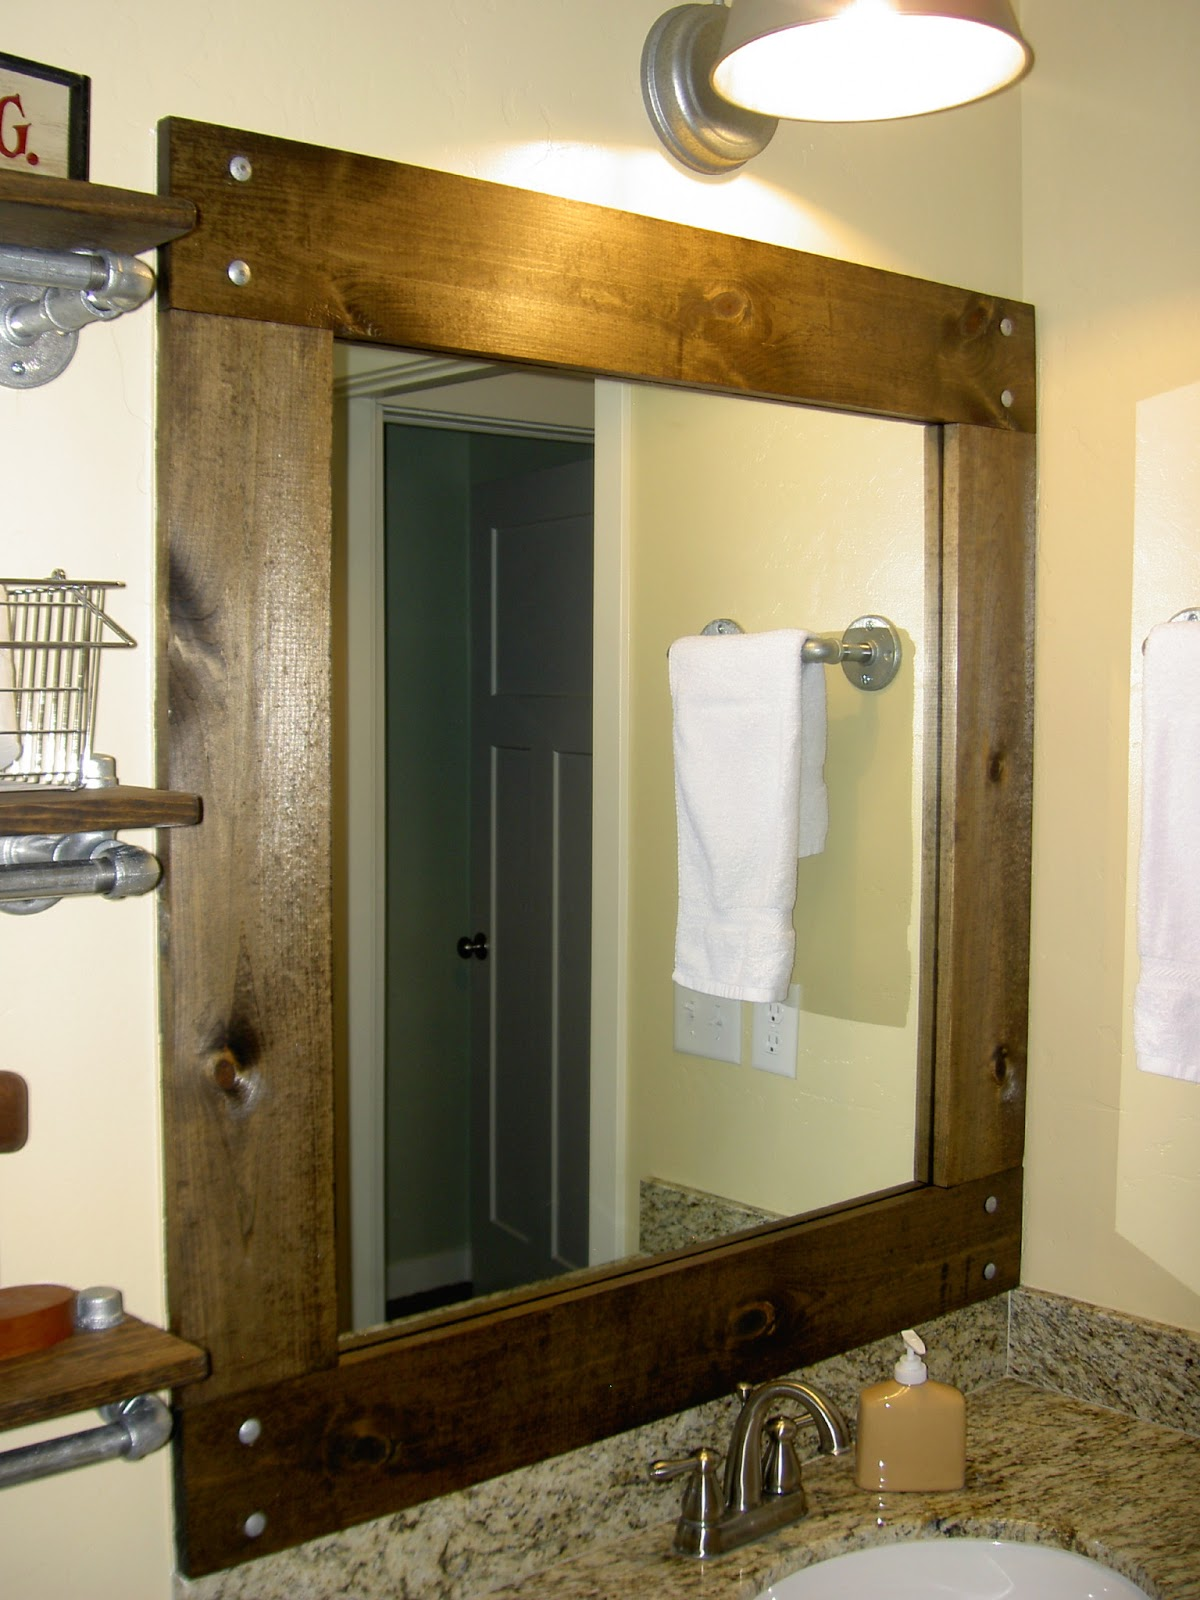 Framed Bathroom Mirror Pictures full of great ideas how to upgrade your builder grade. yosemite